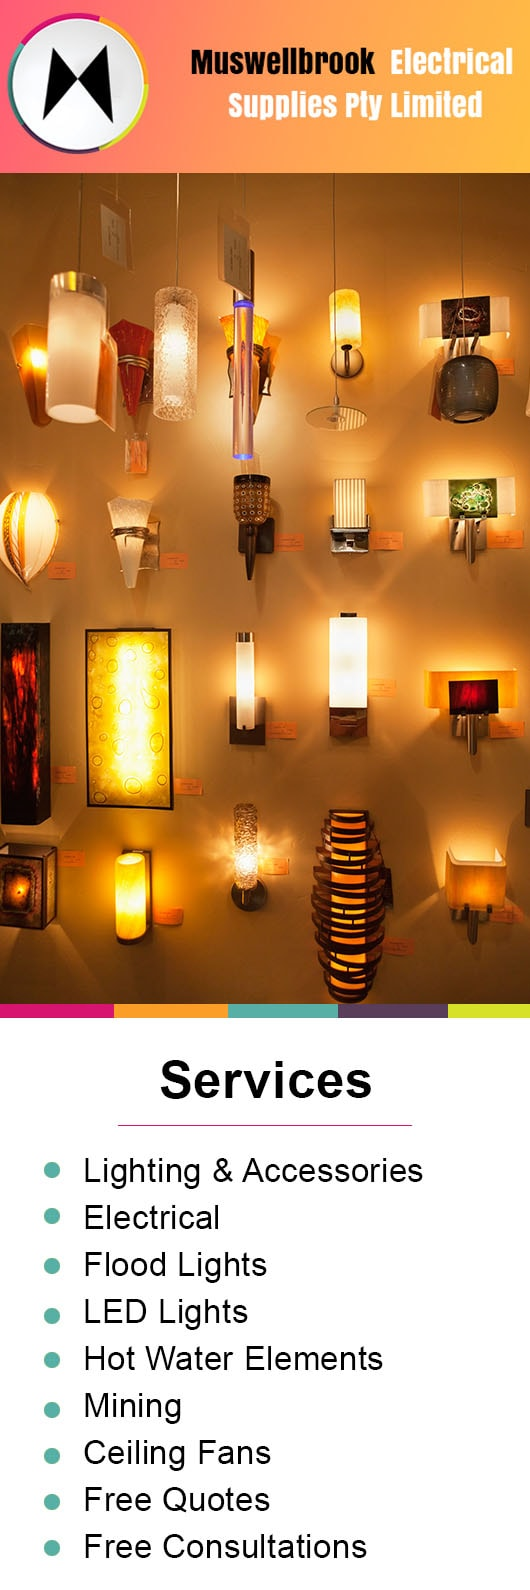 Muswellbrook Electrical Supplies Pty Limited Lighting